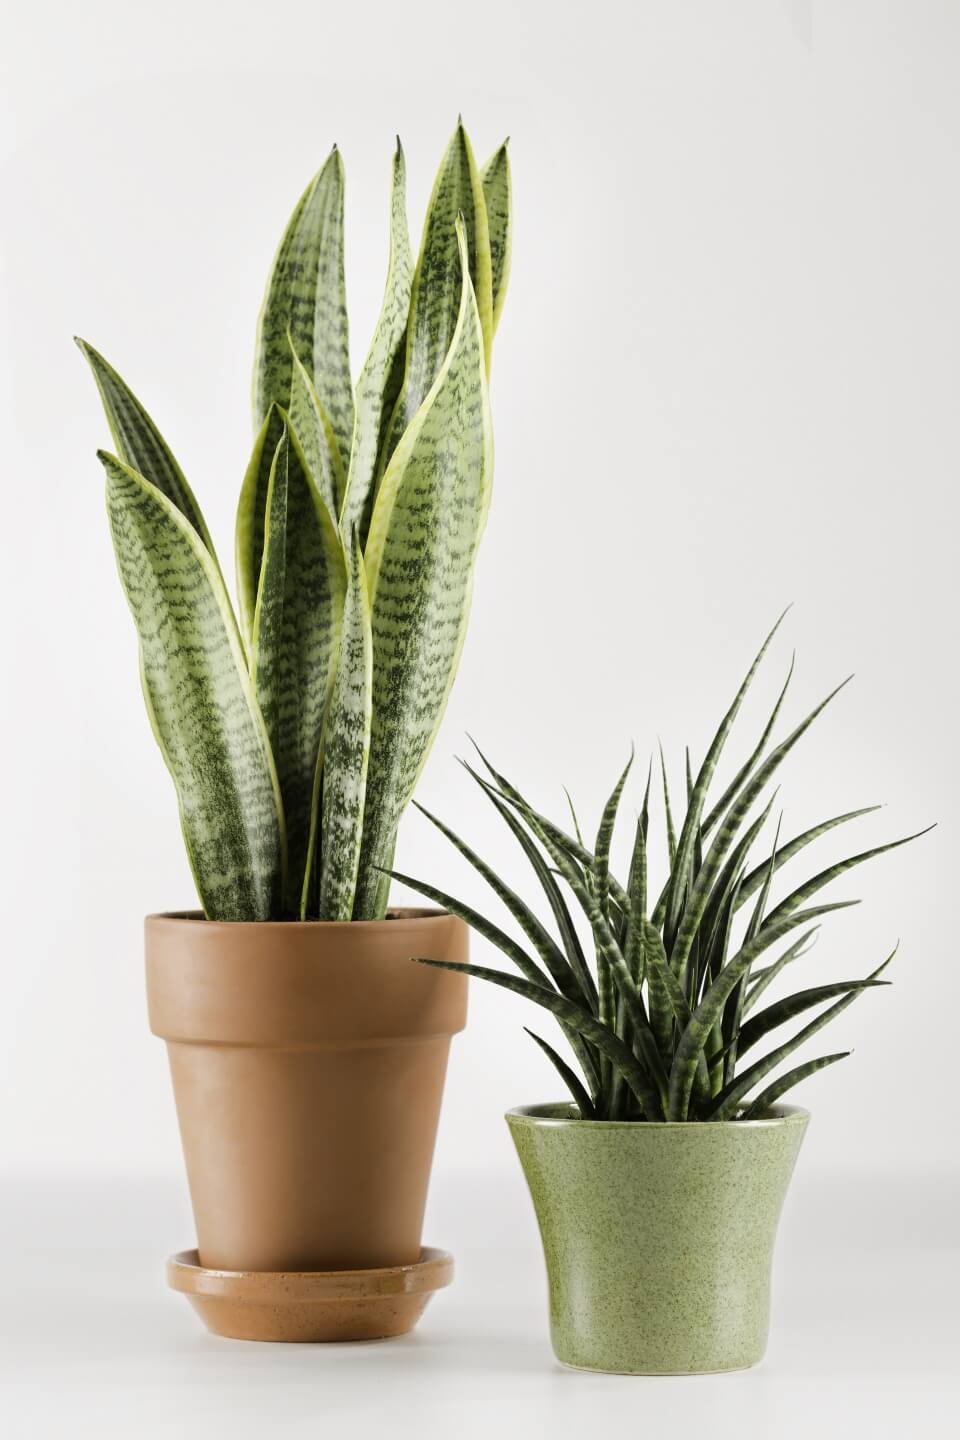 Mother in law's tongue: Breathe Easy with an Indoor Garden: Improve the Air Quality and Charm of Your Home with Houseplants